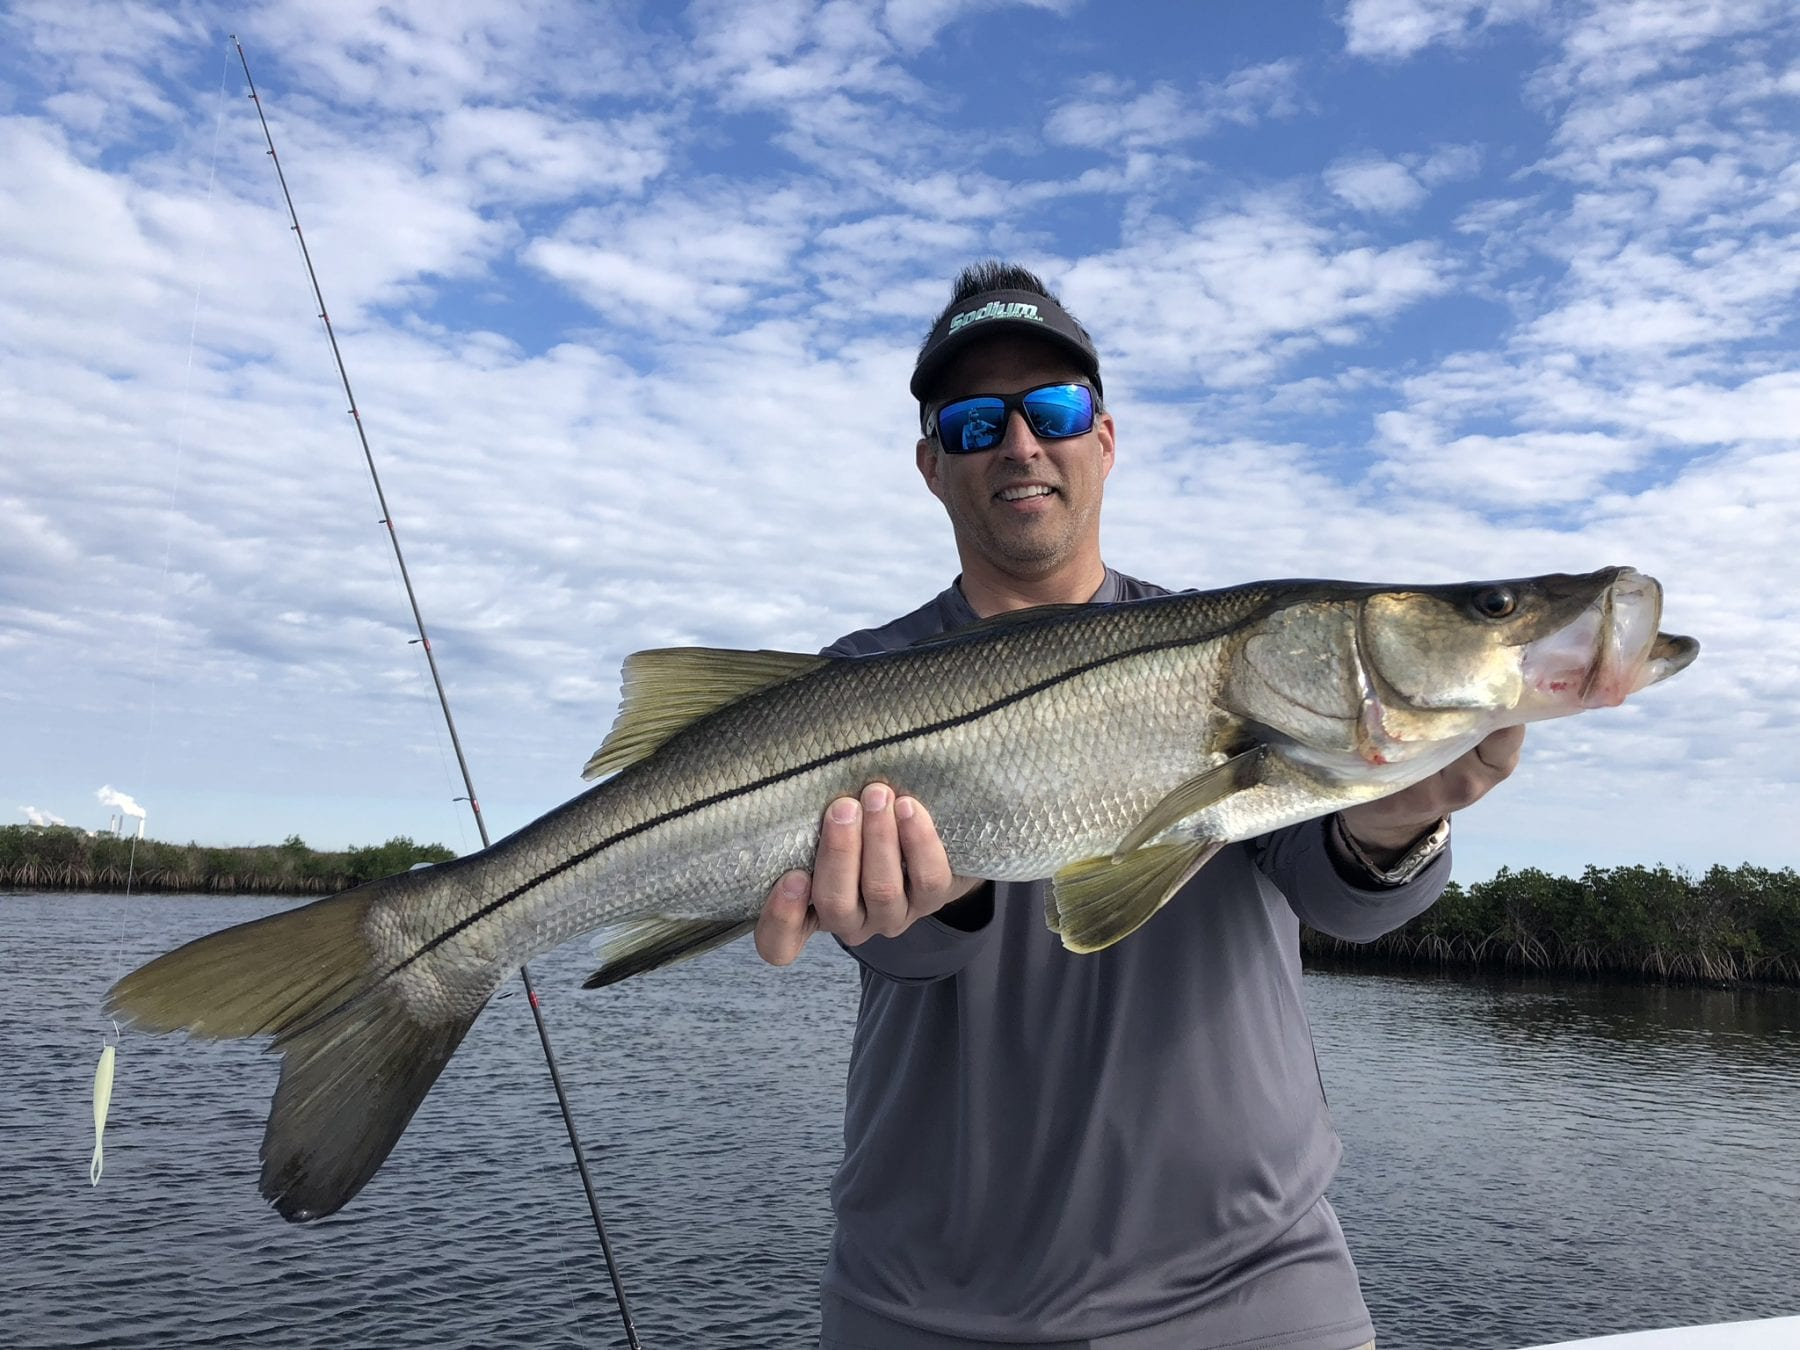 Crystal river coastal angler the angler magazine for Crystal river fl fishing report